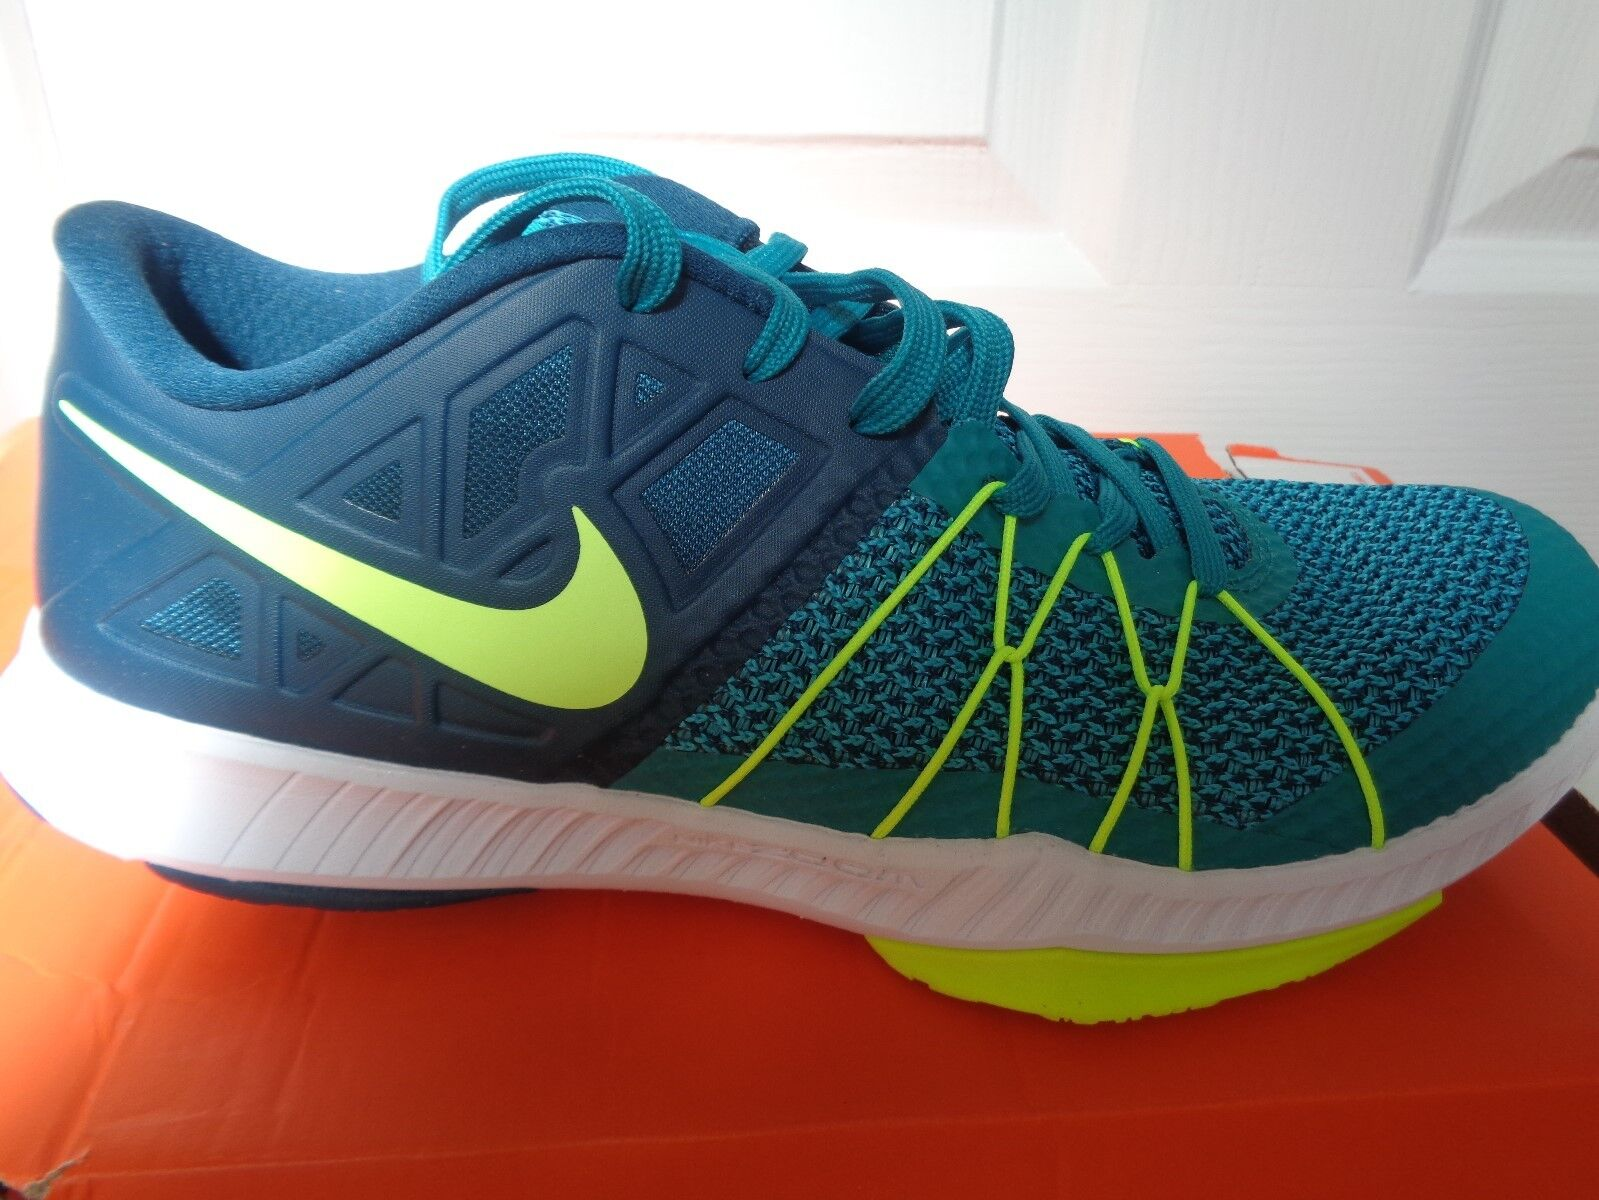 Nike Zoom Train Incredibly Fast trainers 844803 300 eu 42.5 us 9 NEW+BOX Great discount